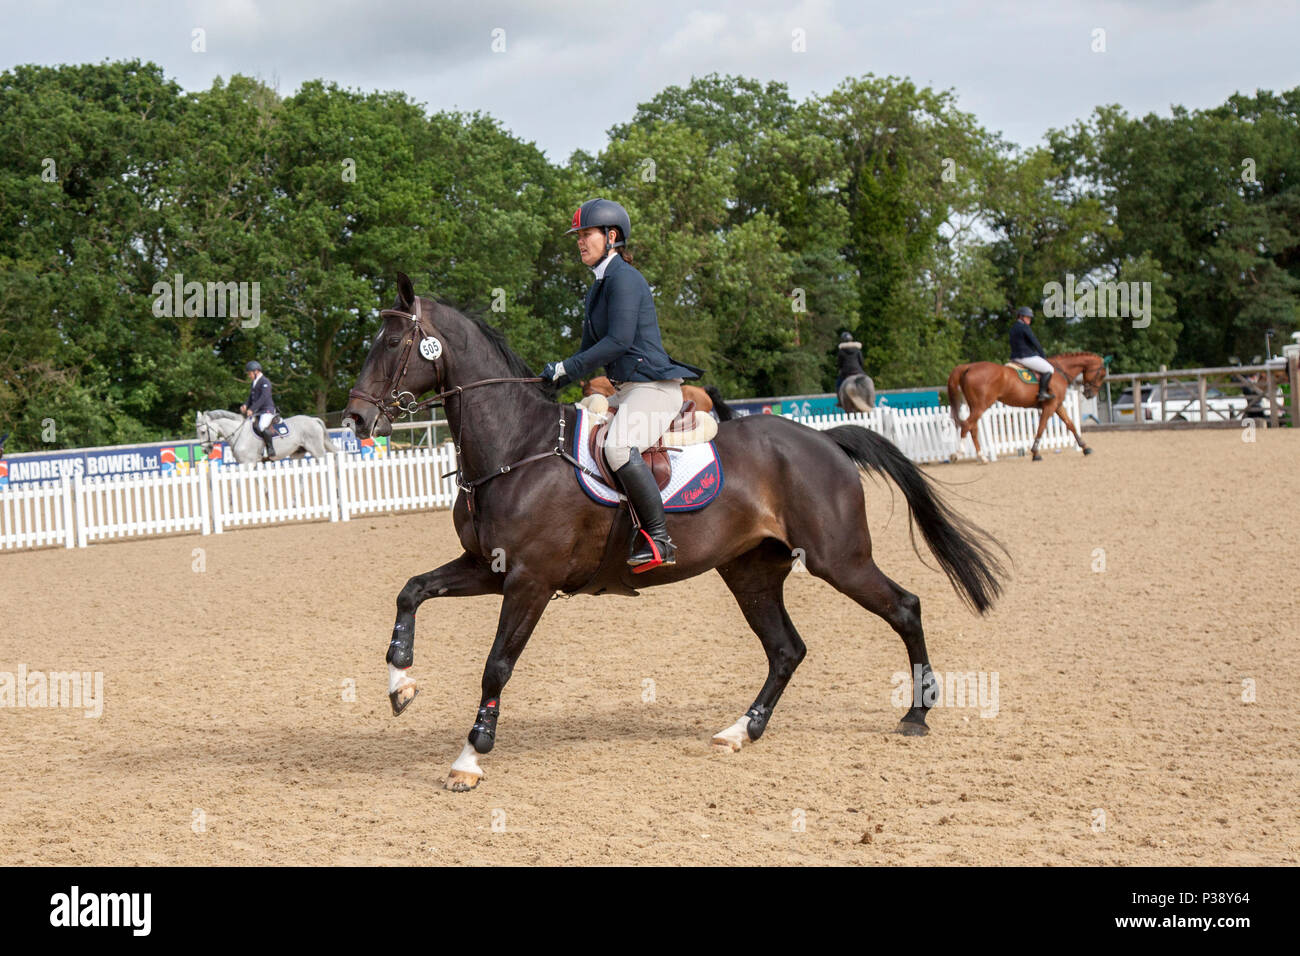 Bolesworth, Cheshire, UK. 16th Jun, 2018.  505 Clare West Show jumper riding  Courageux (Competition S21-CSIAm-A)  at the Equerry Bolesworth International Horse Show. Credit MediaWorldImages/AlamyLiveNews - Stock Image